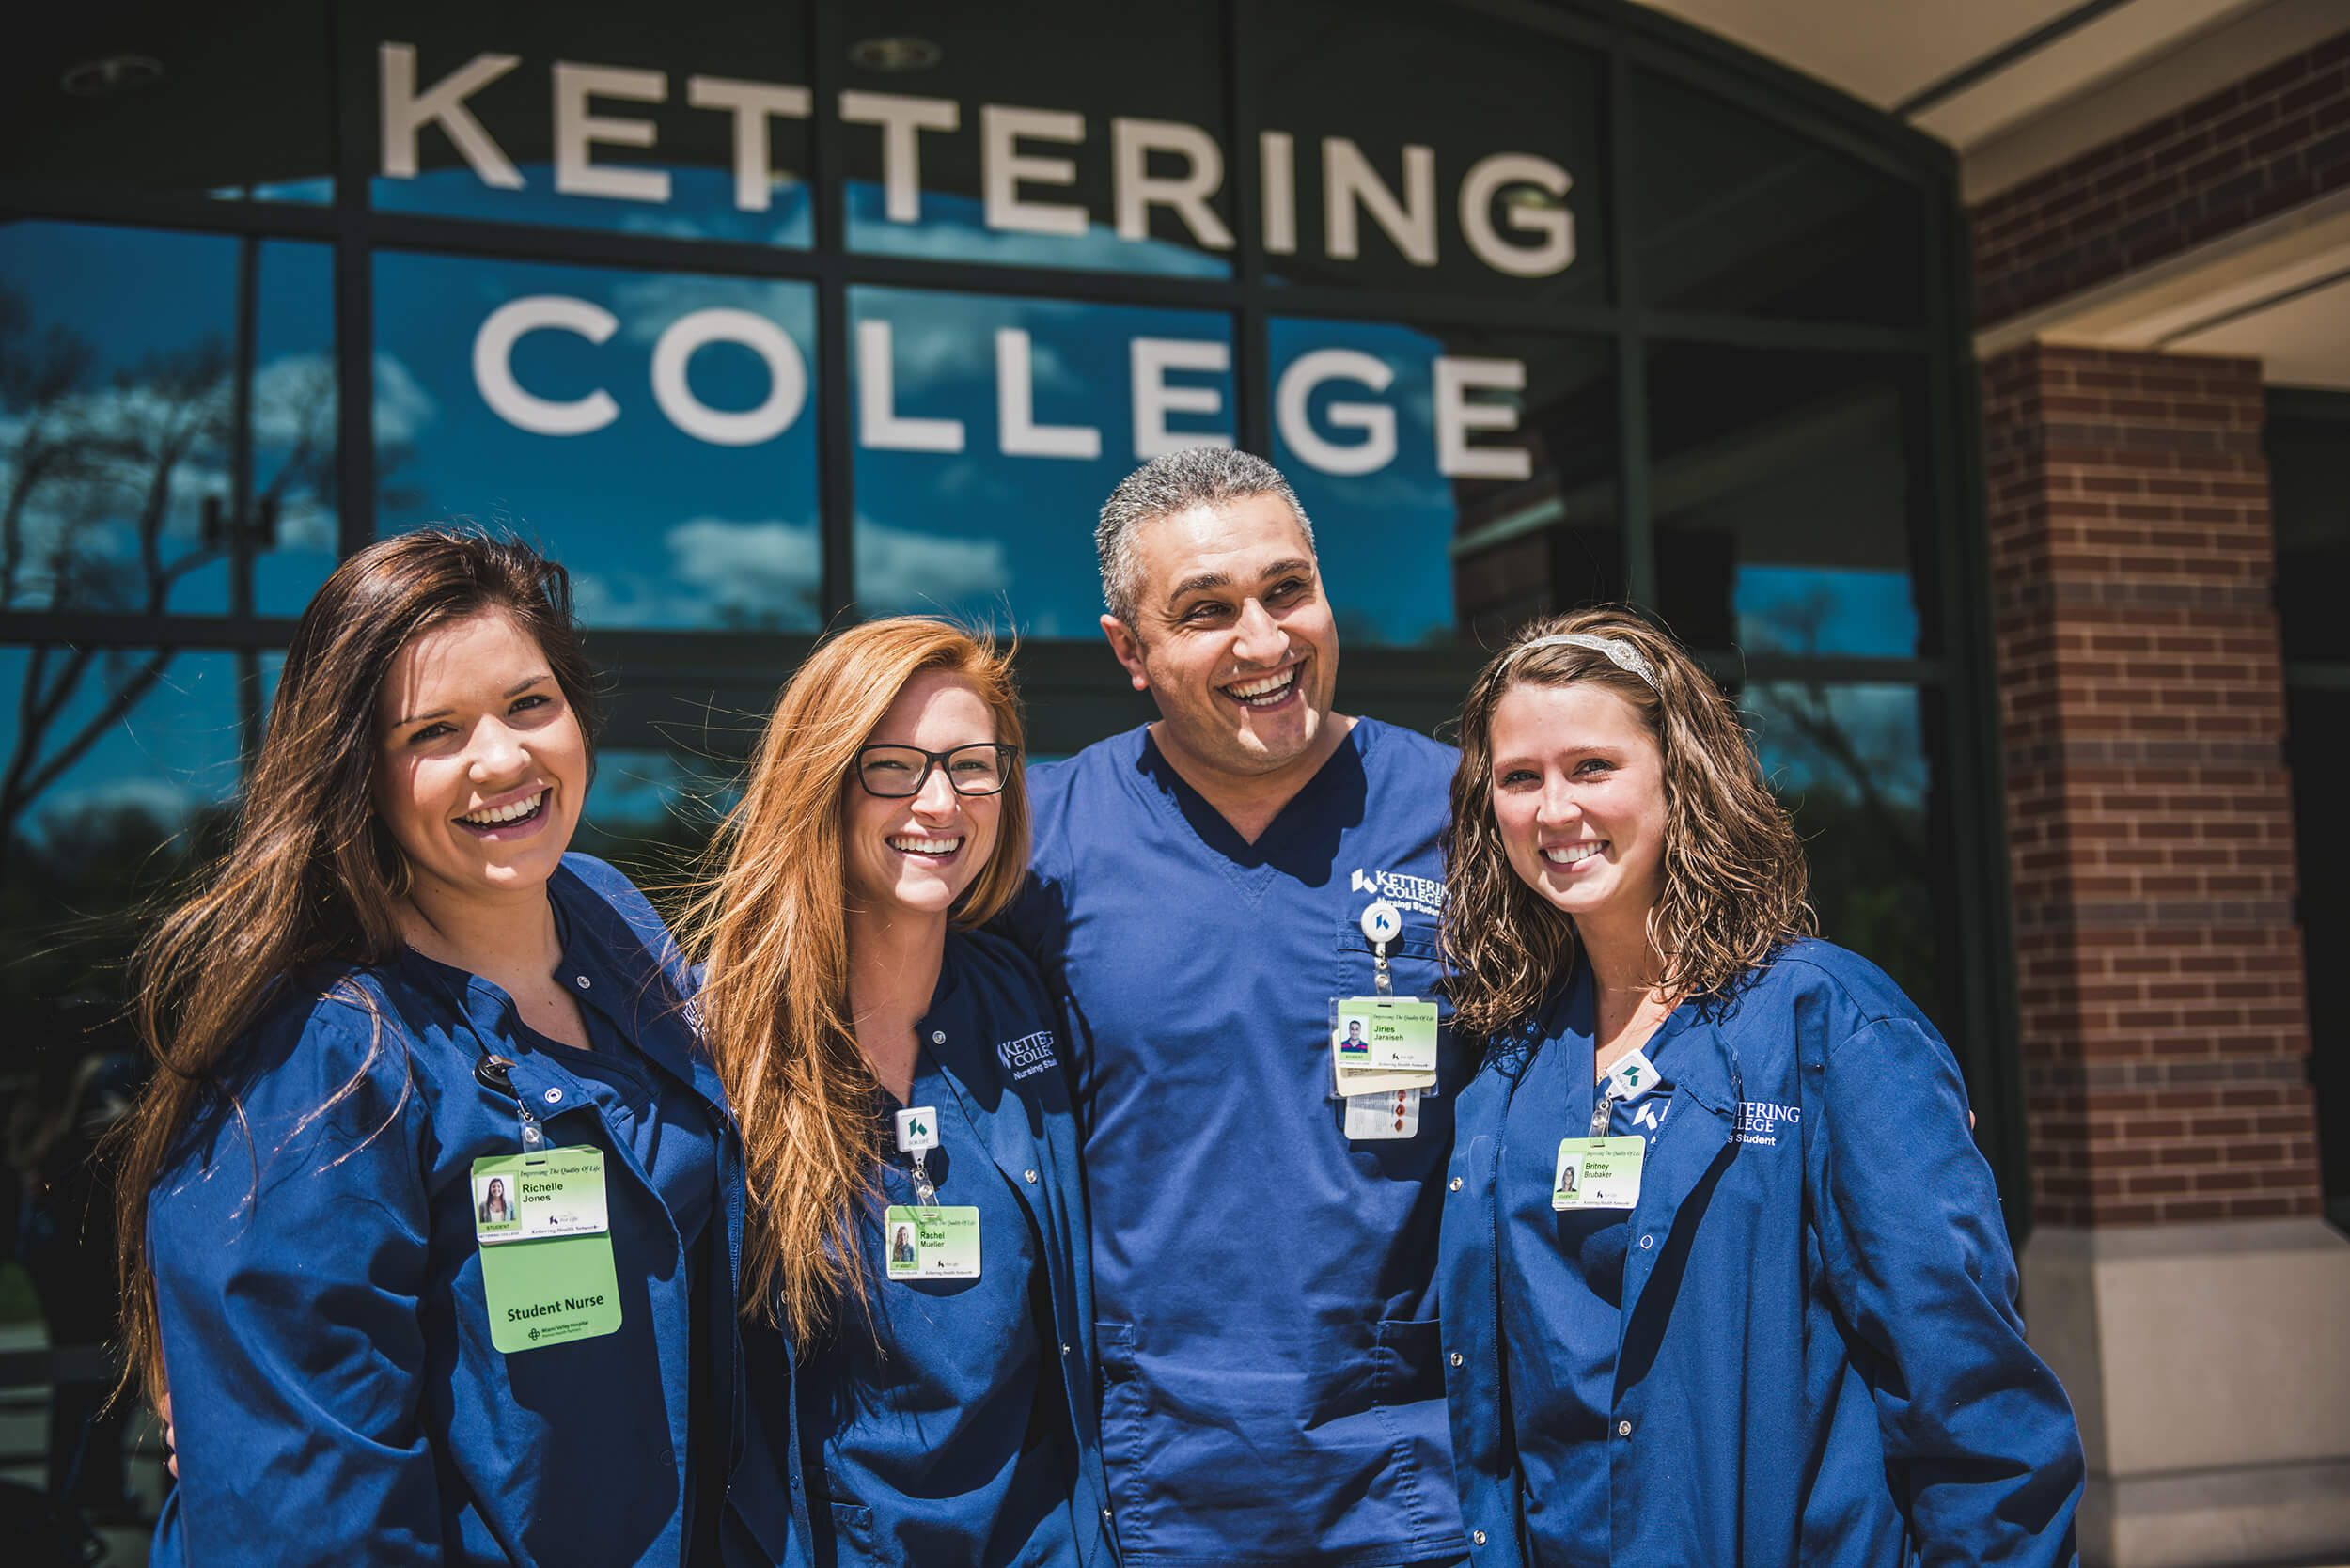 Students interested in the nursing program at Kettering College now have two options for admissions entry points: fall and winter semesters beginning in January 2020